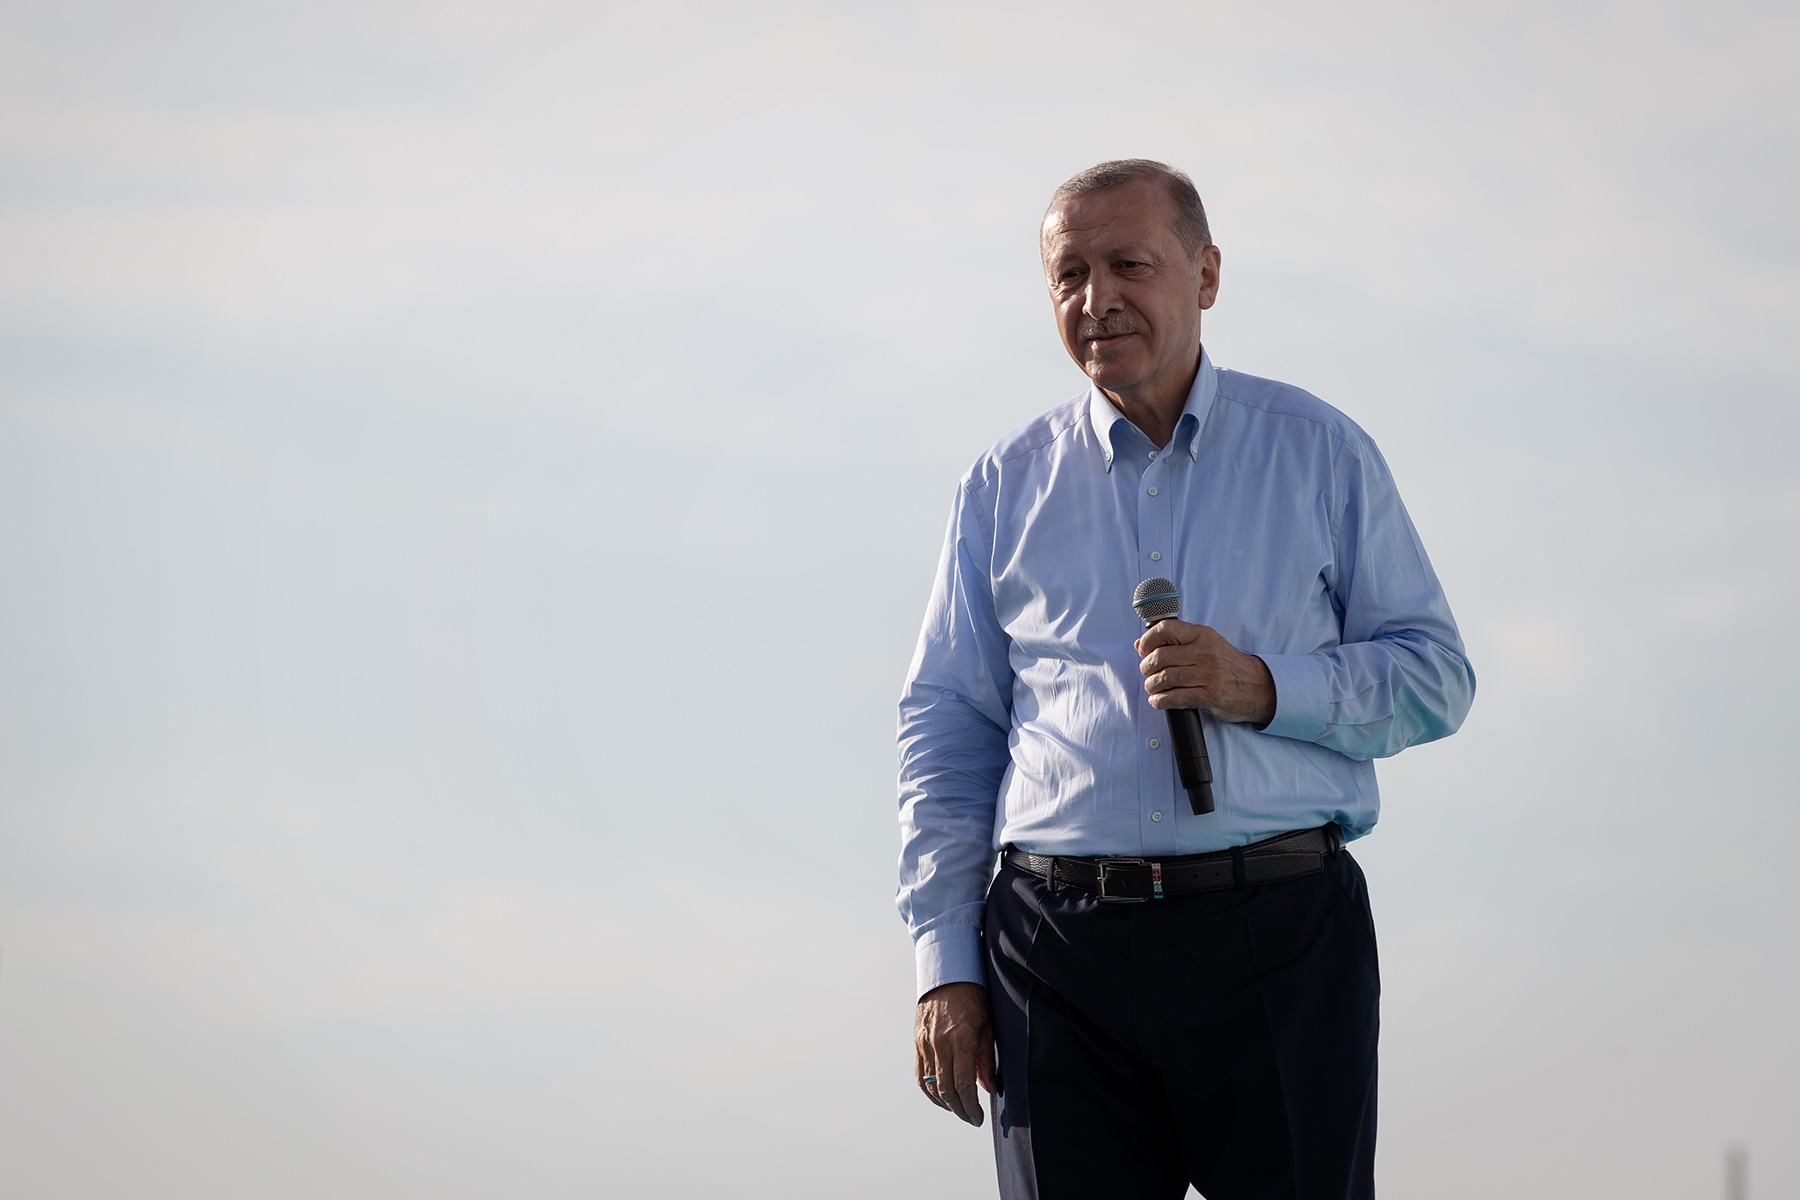 The outgoing president Recep Tayyip Erdoğan takes a break during an electoral rally and examines the reaction of his supporters facing the presentation of his building projects for Istanbul on June 17, 2018